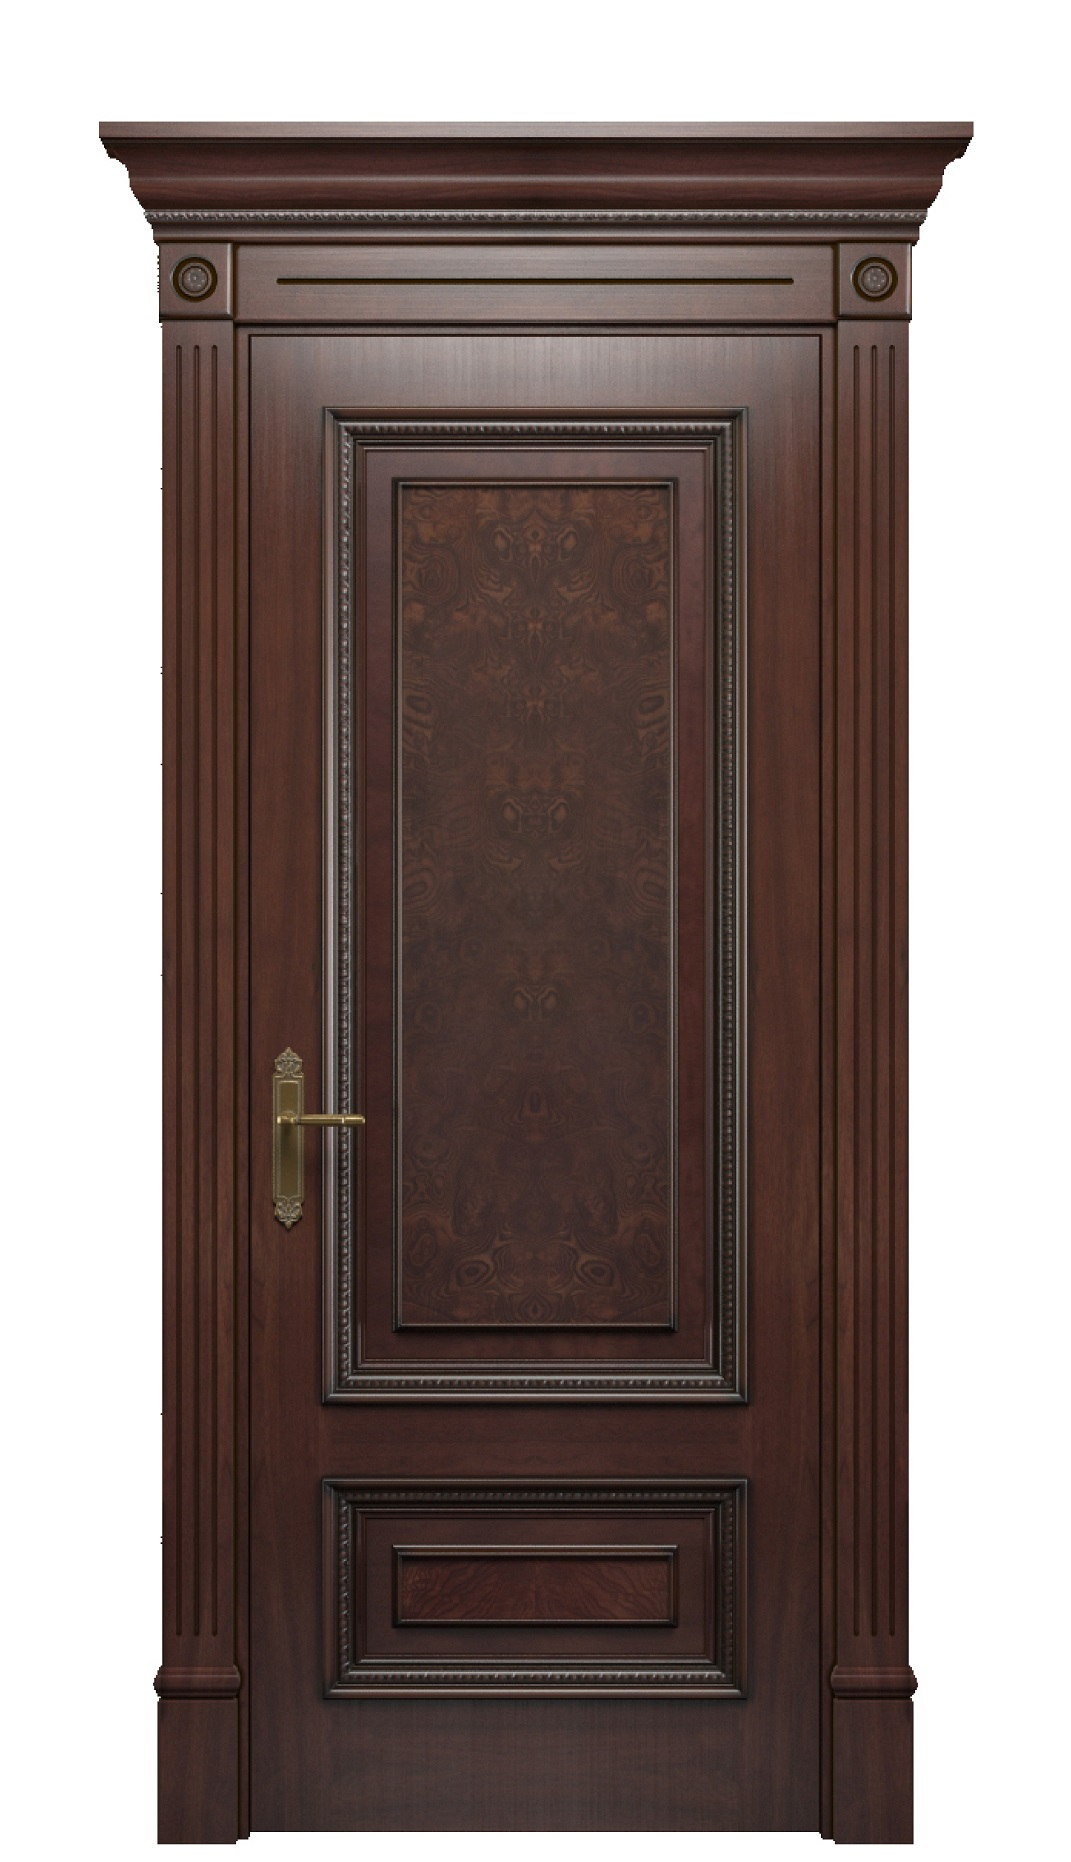 Image Imperia Interior Door Stained Oak 0